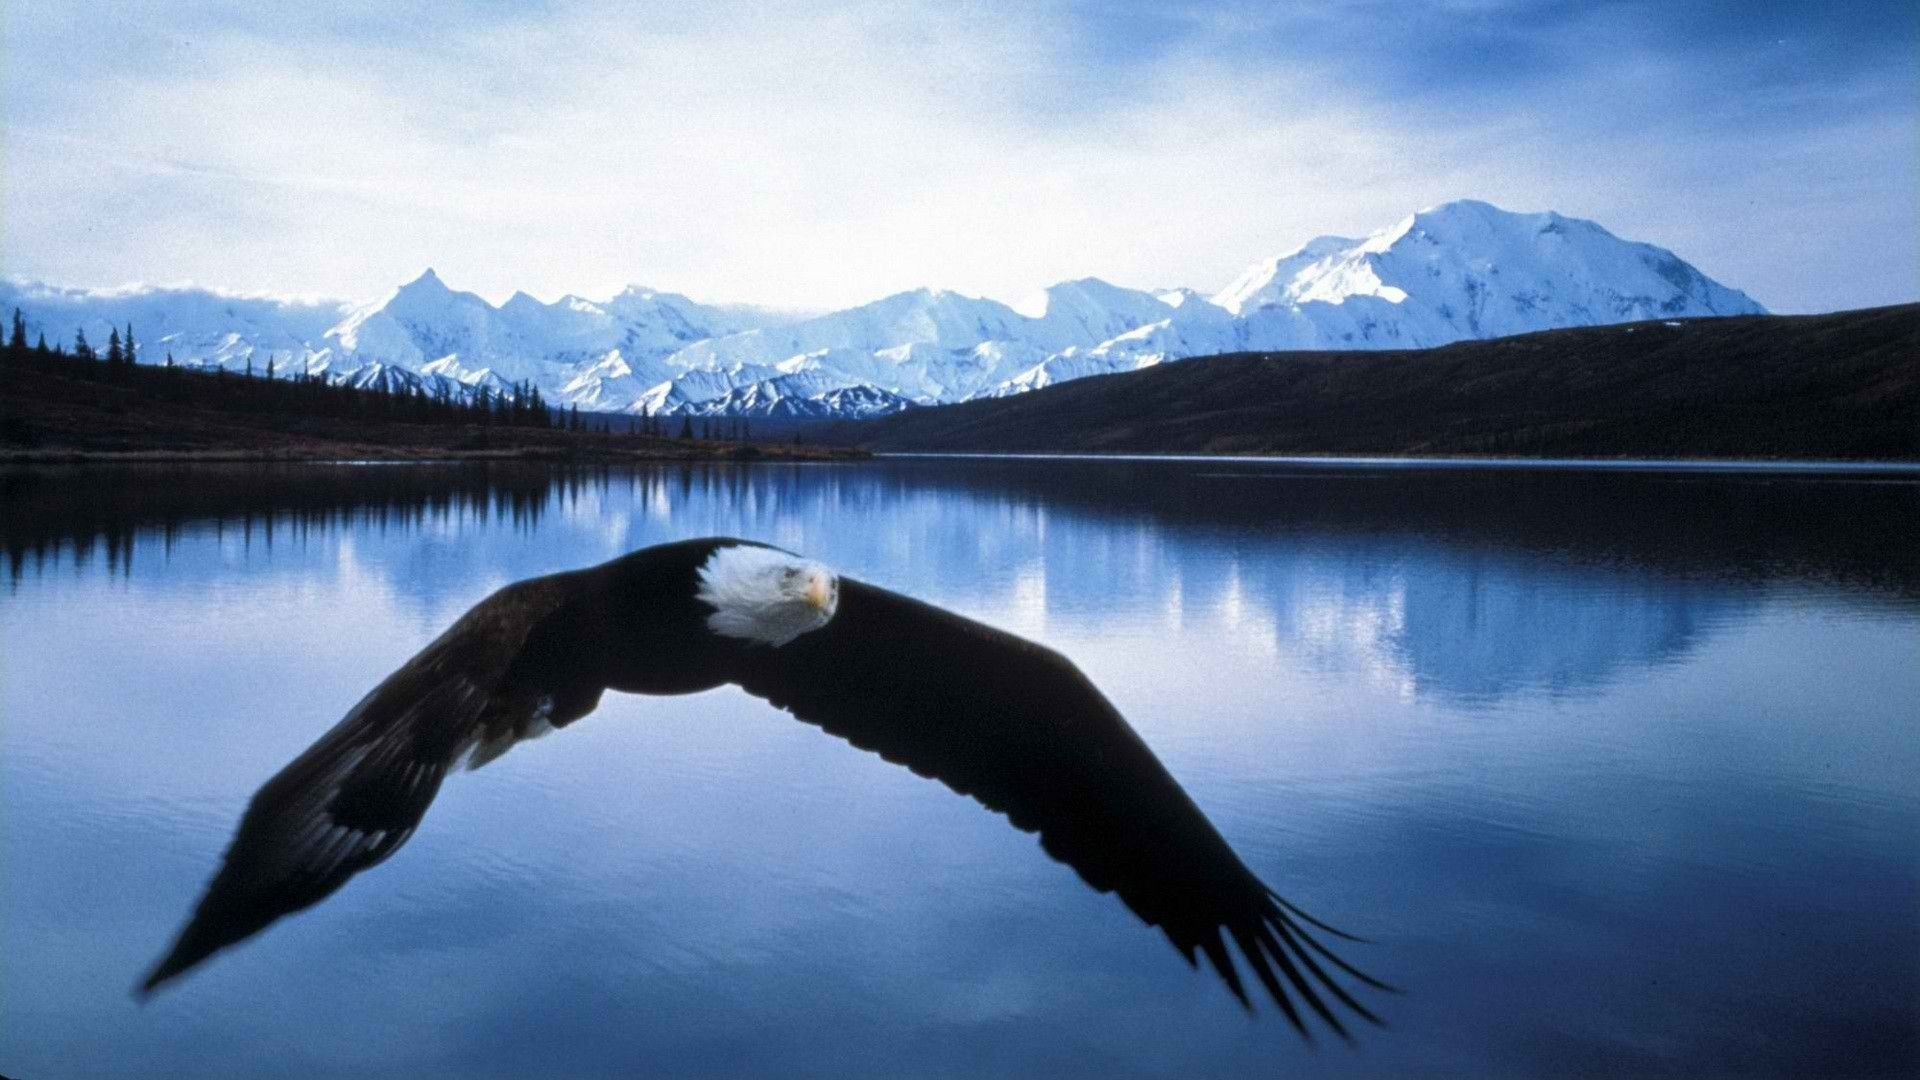 Bald Eagle Wallpaper HD Images – One HD Wallpaper Pictures